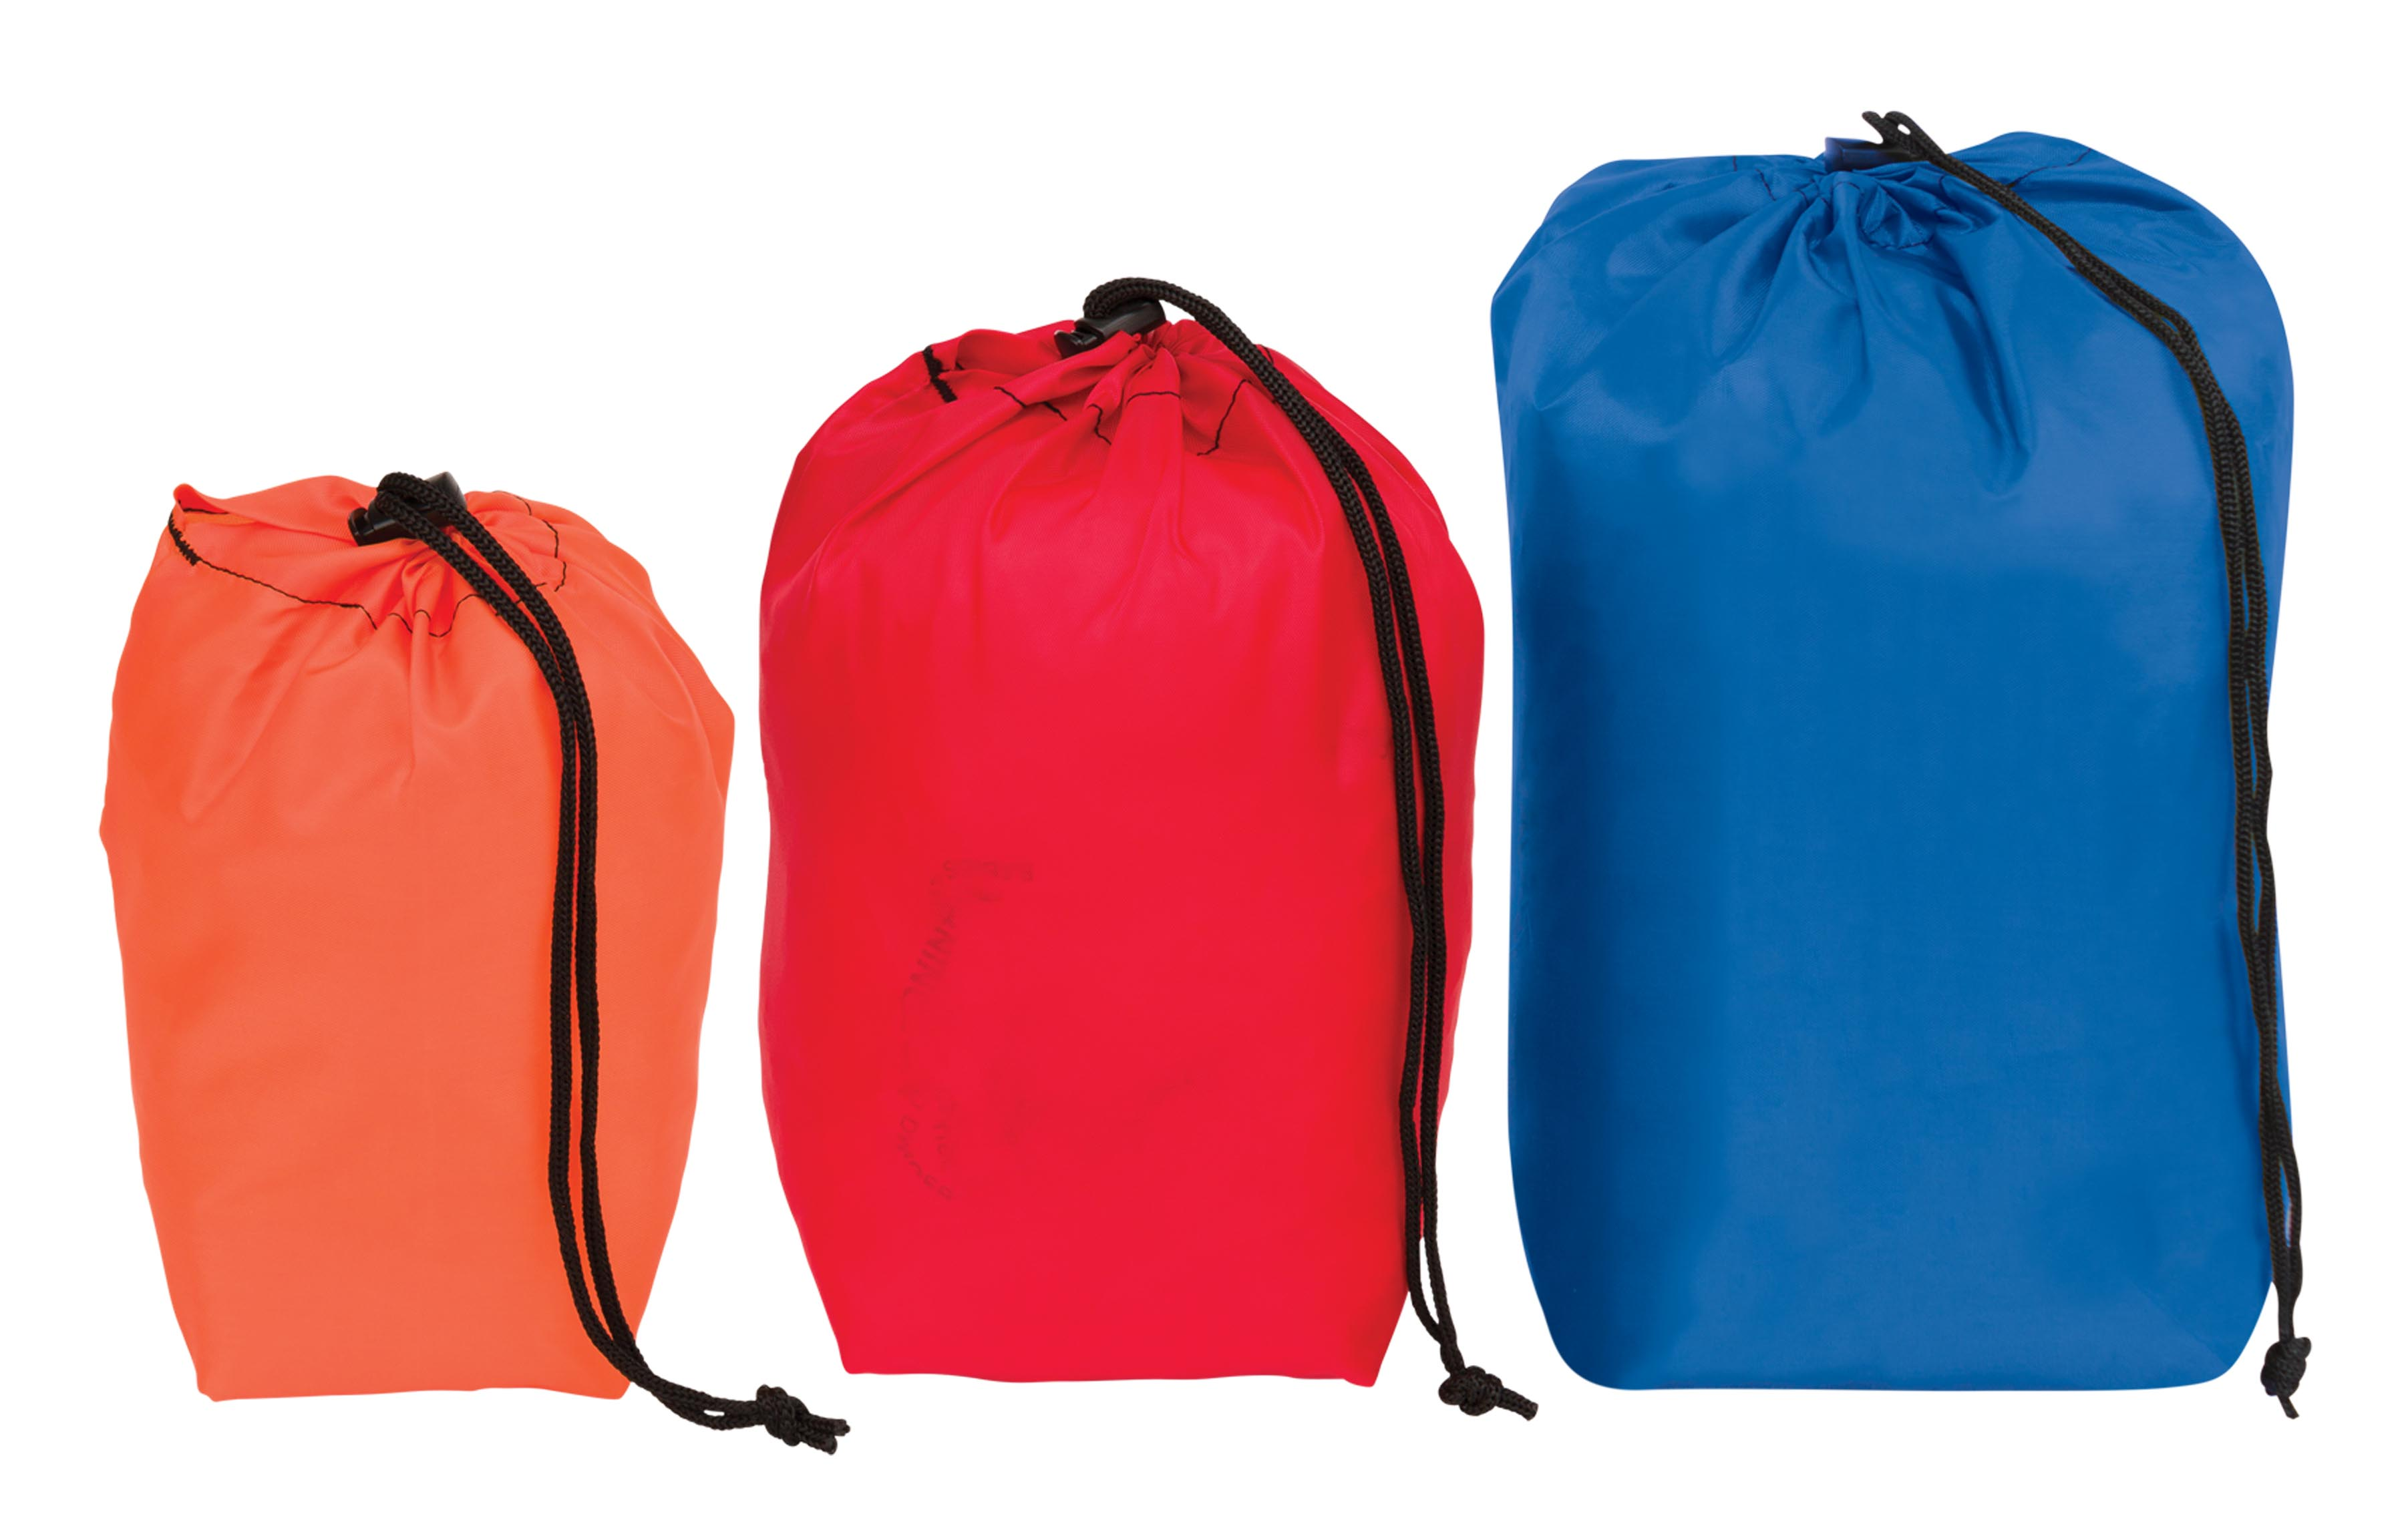 c7ae8e3780 Outdoor Products Ditty Bag Sack